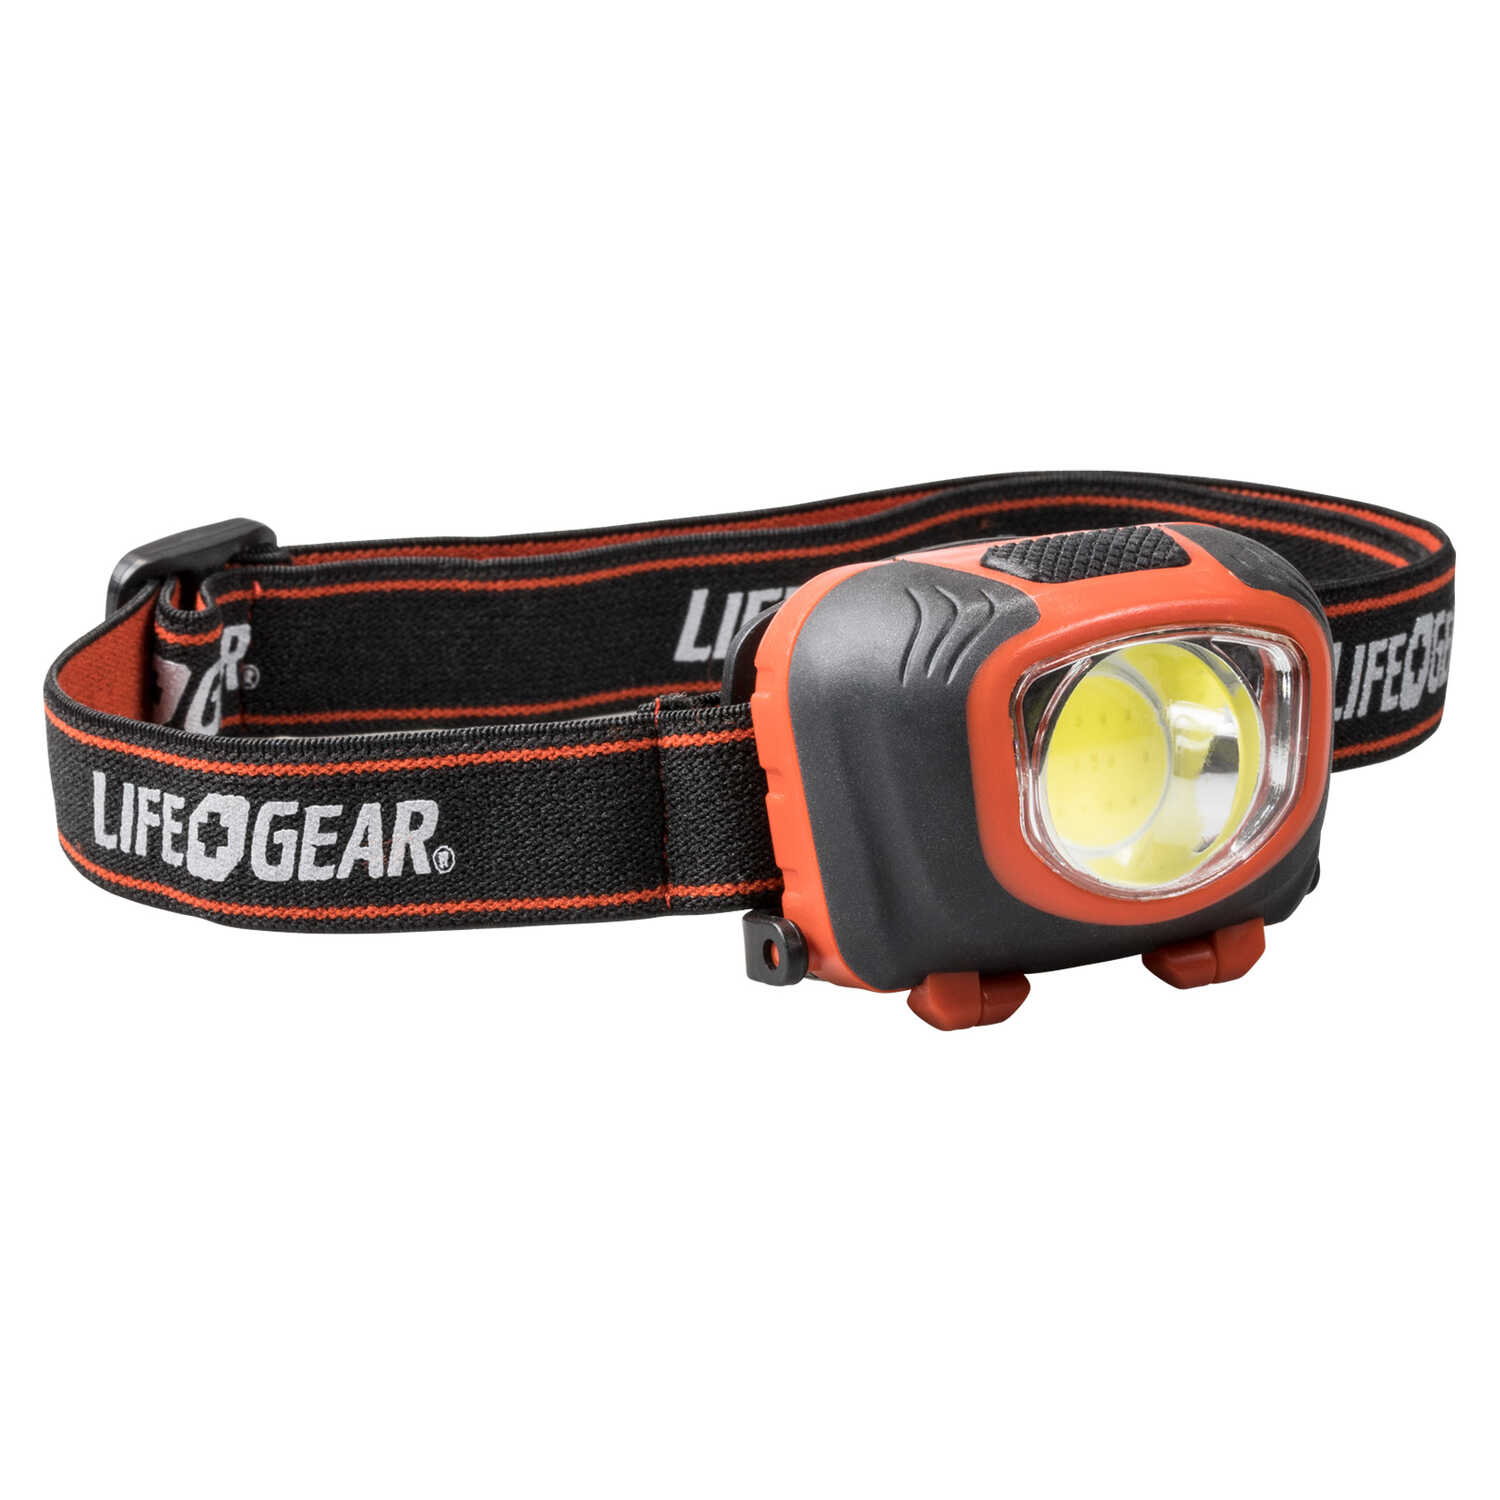 LIFE GEAR  Storm Proof  260 lumens Black/Red  LED  Head Lamp  AAA Battery